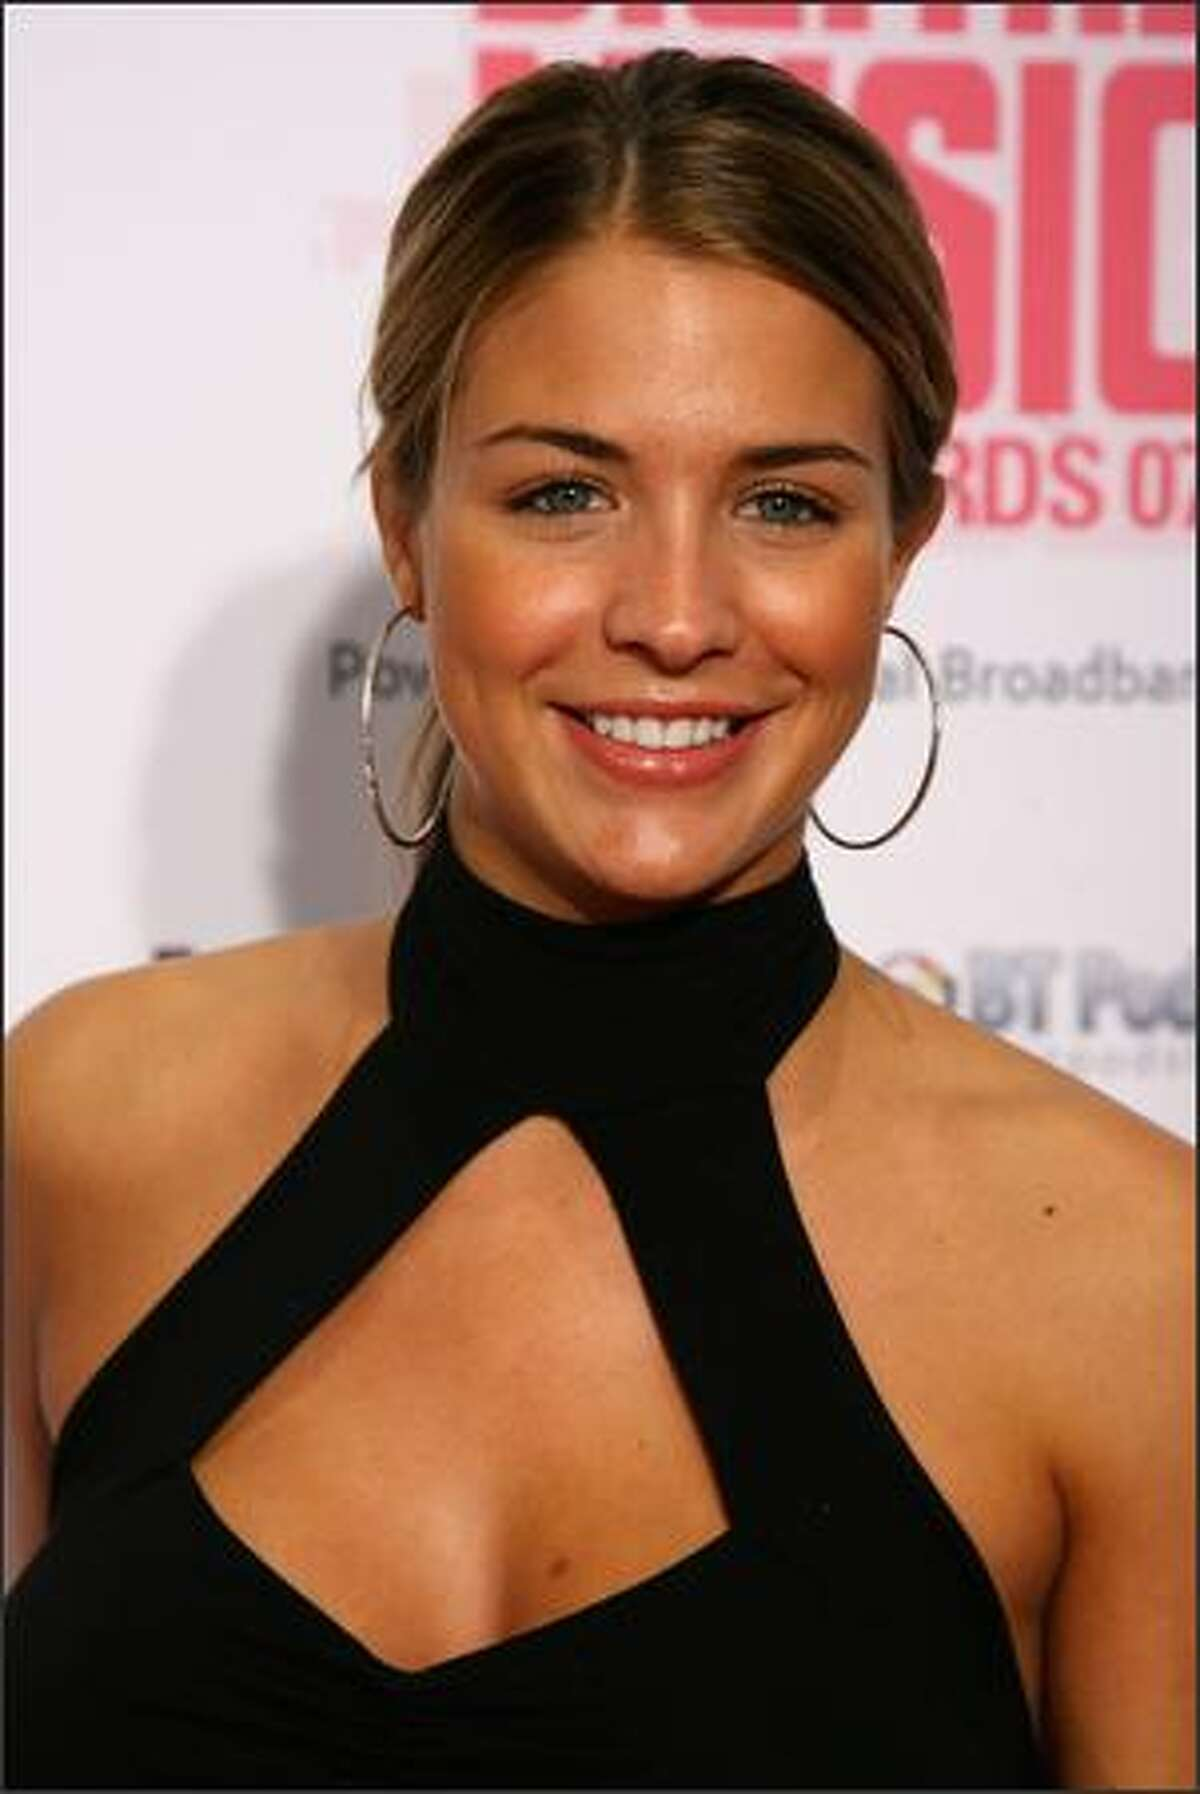 Actress Gemma Atkinson arrives at the BT Digital Music Awards at the Roundhouse on October 2, 2007 in London, England.